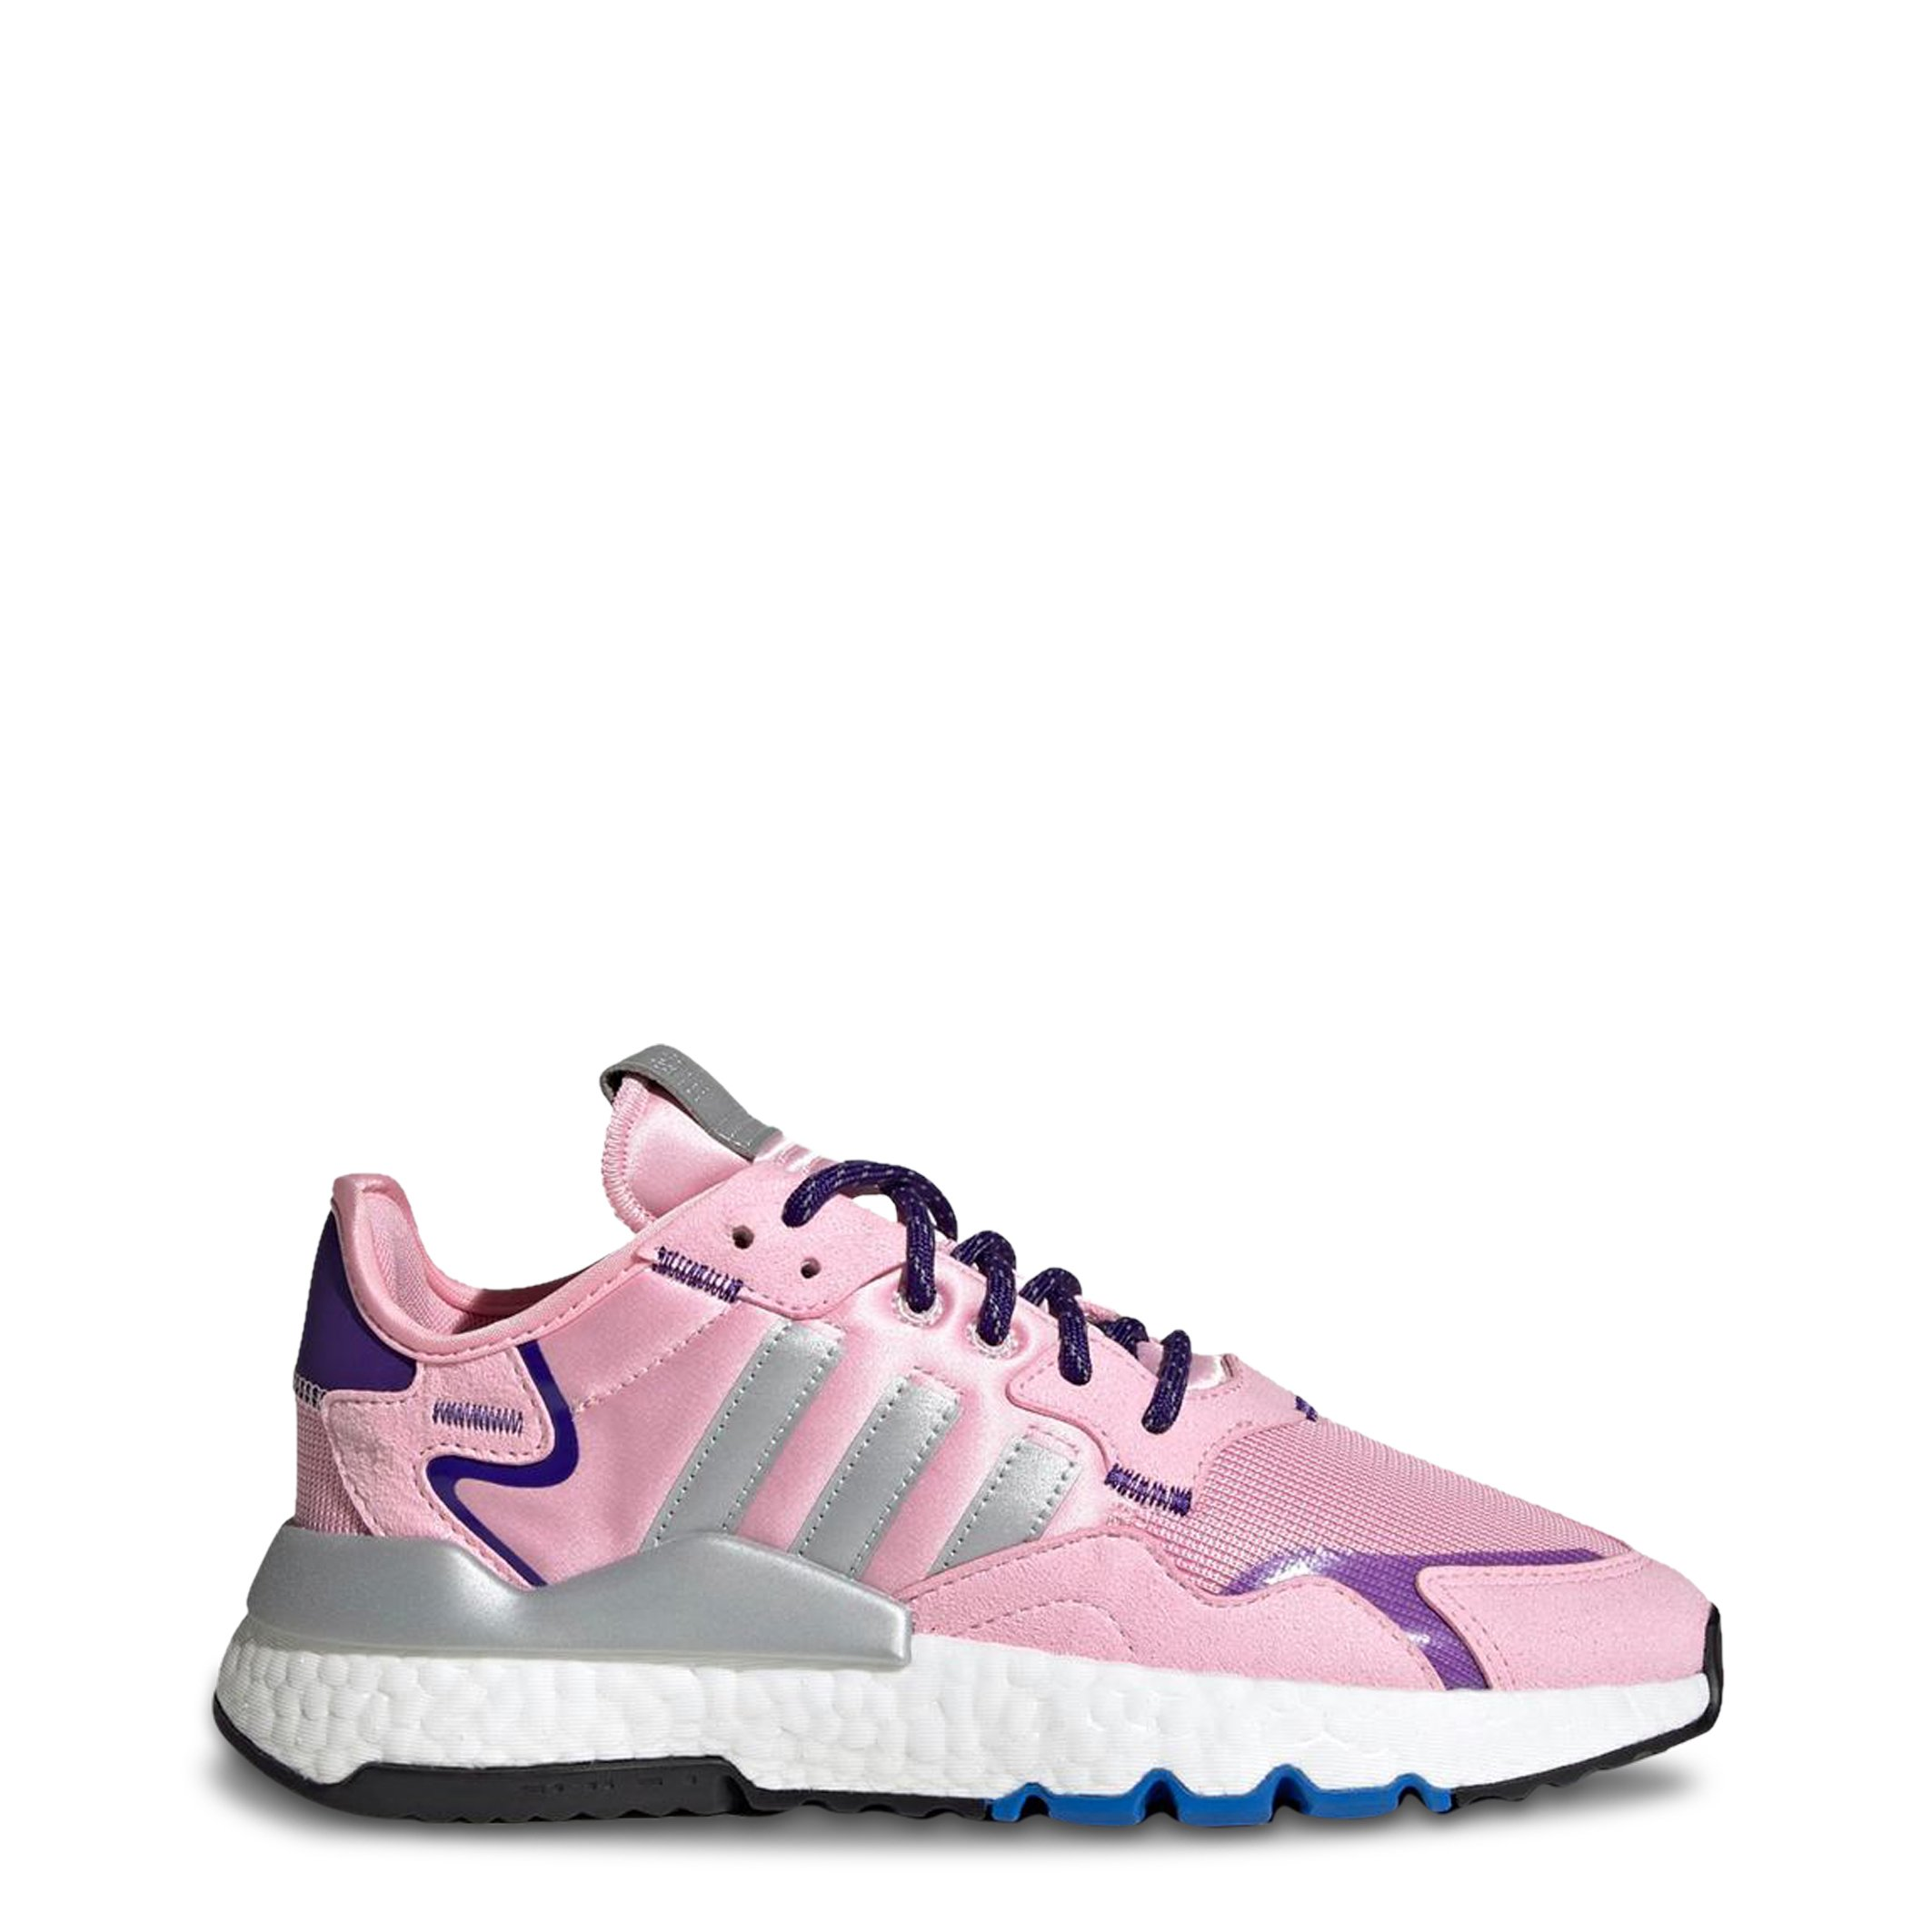 Adidas Men's Nite Jogger Trainers Various Colours EE5851 - pink-1 UK 5.0